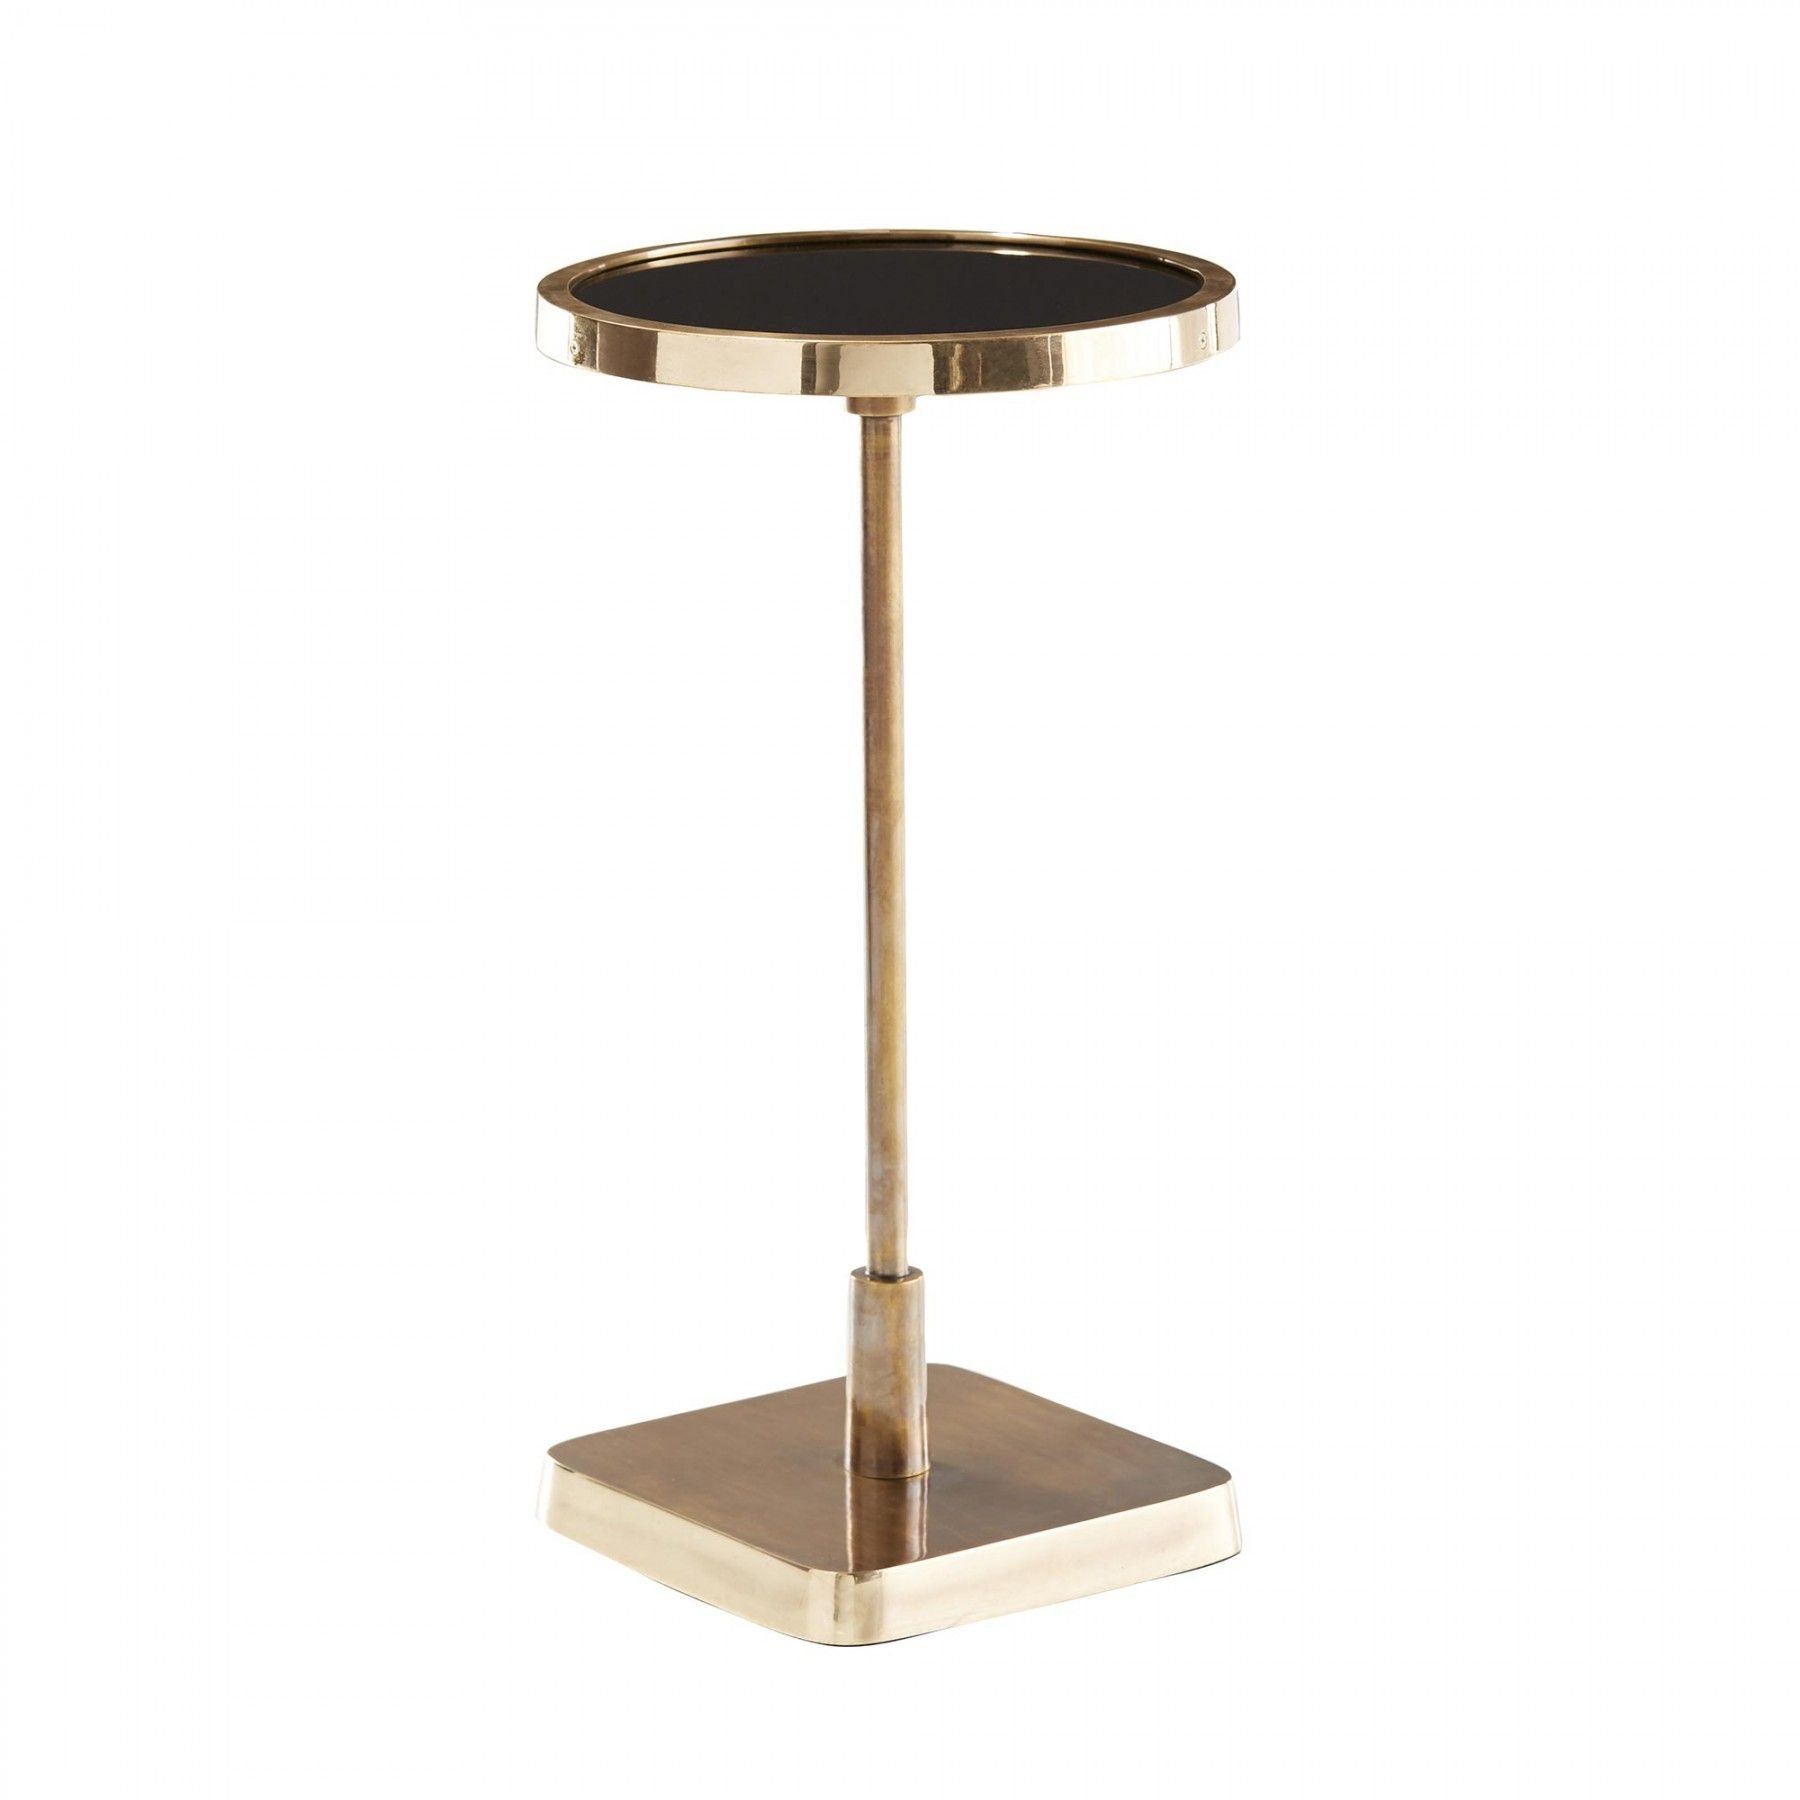 Nice Polished Brass On The Base And Lip Contrast Beautifully With The Vintage  Brass Pedestal And Black Mirror Top. Group With The Rectangle And Square ... Awesome Ideas